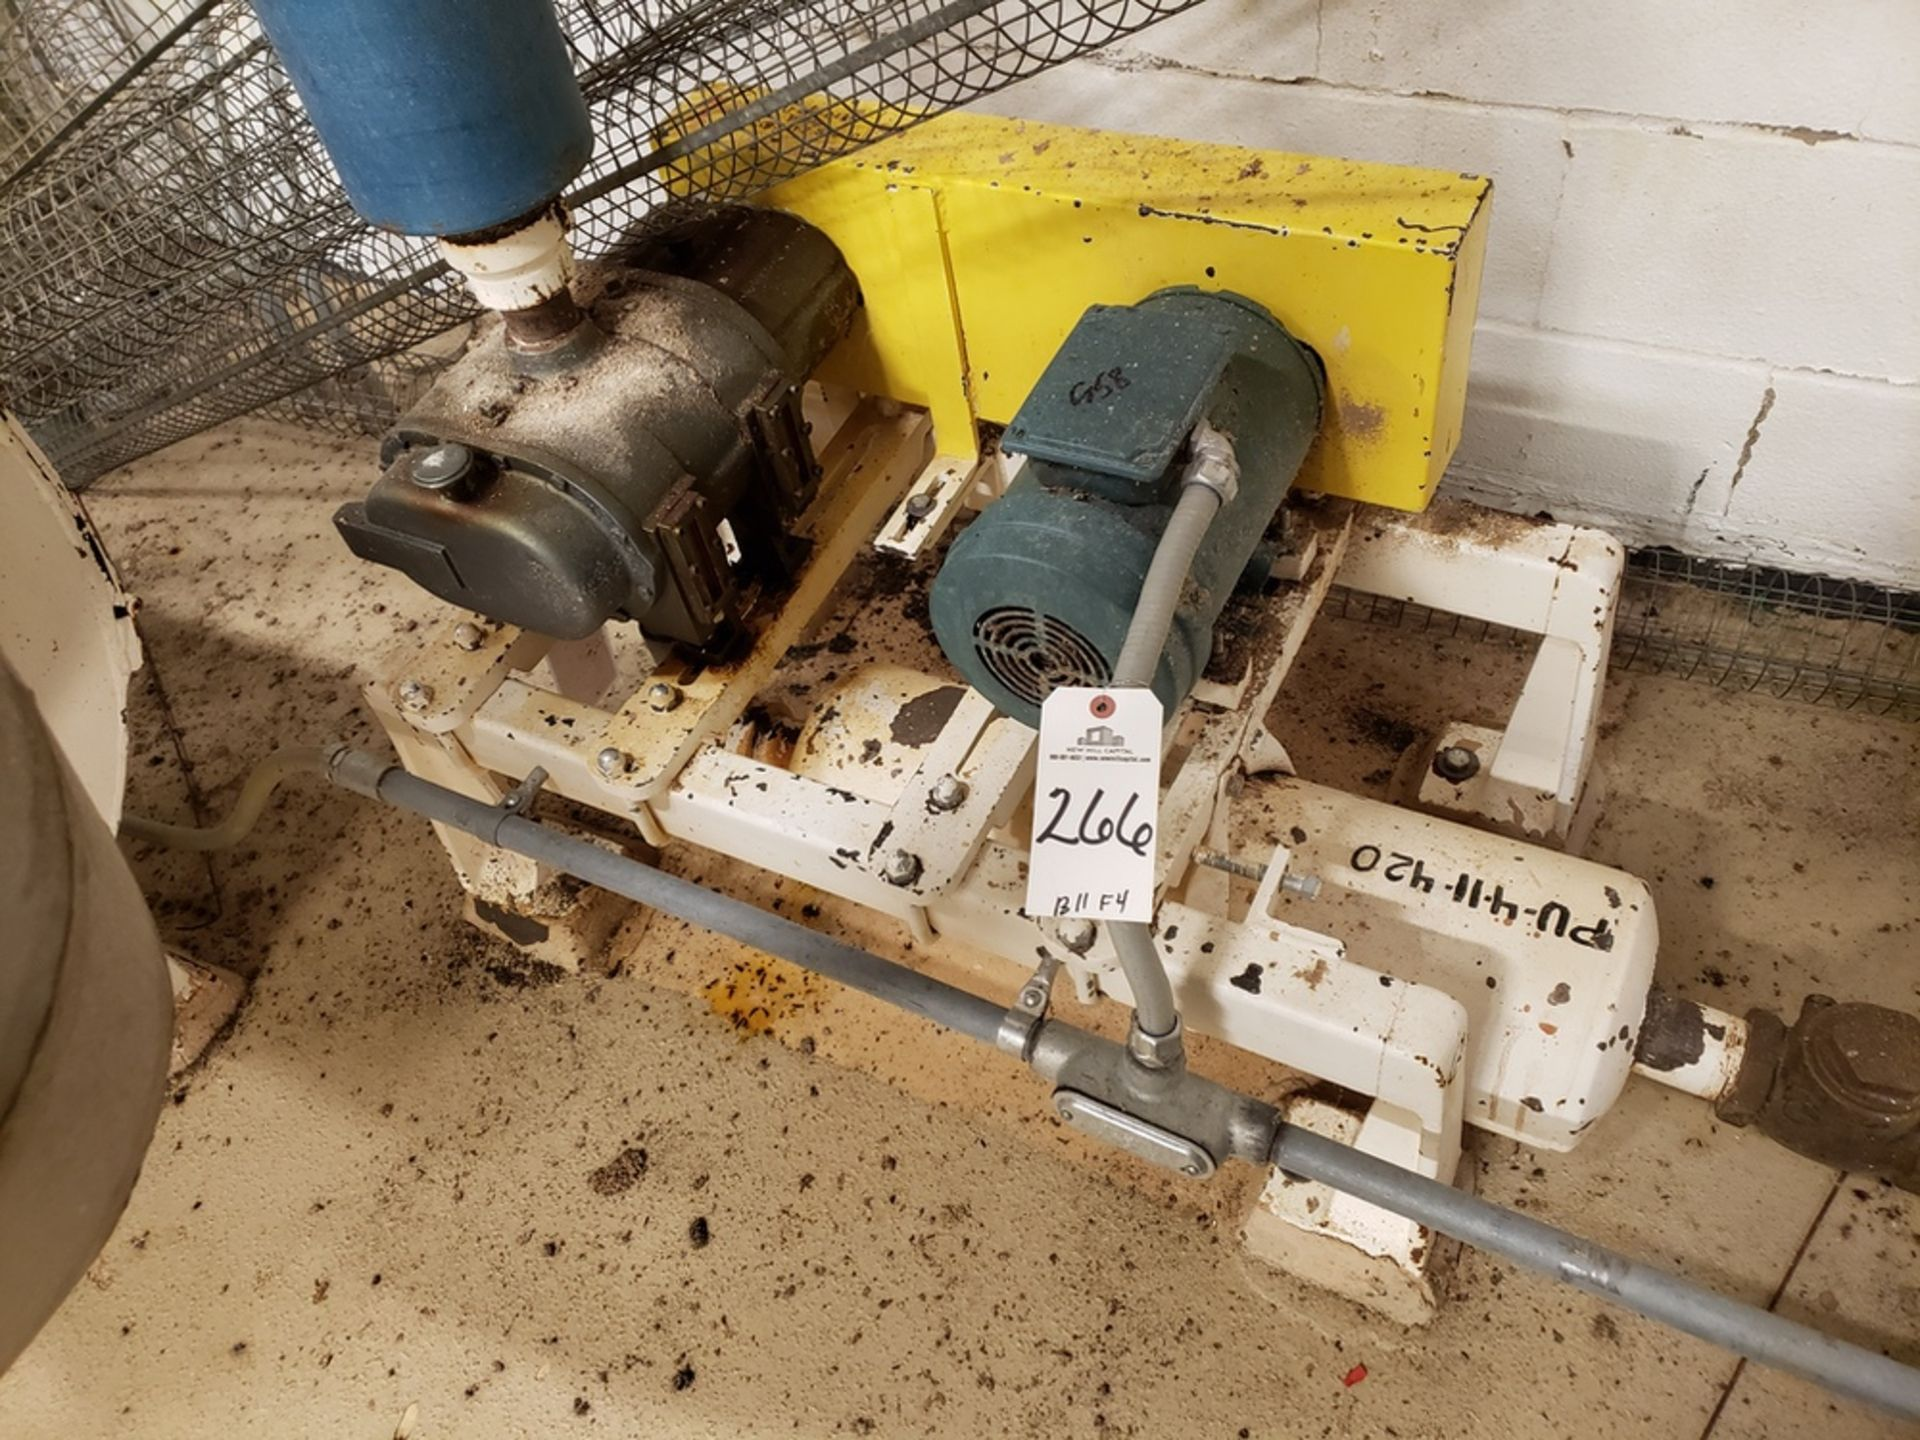 Lot 266 - 3 HP Blower Skid | Rig Fee: $250